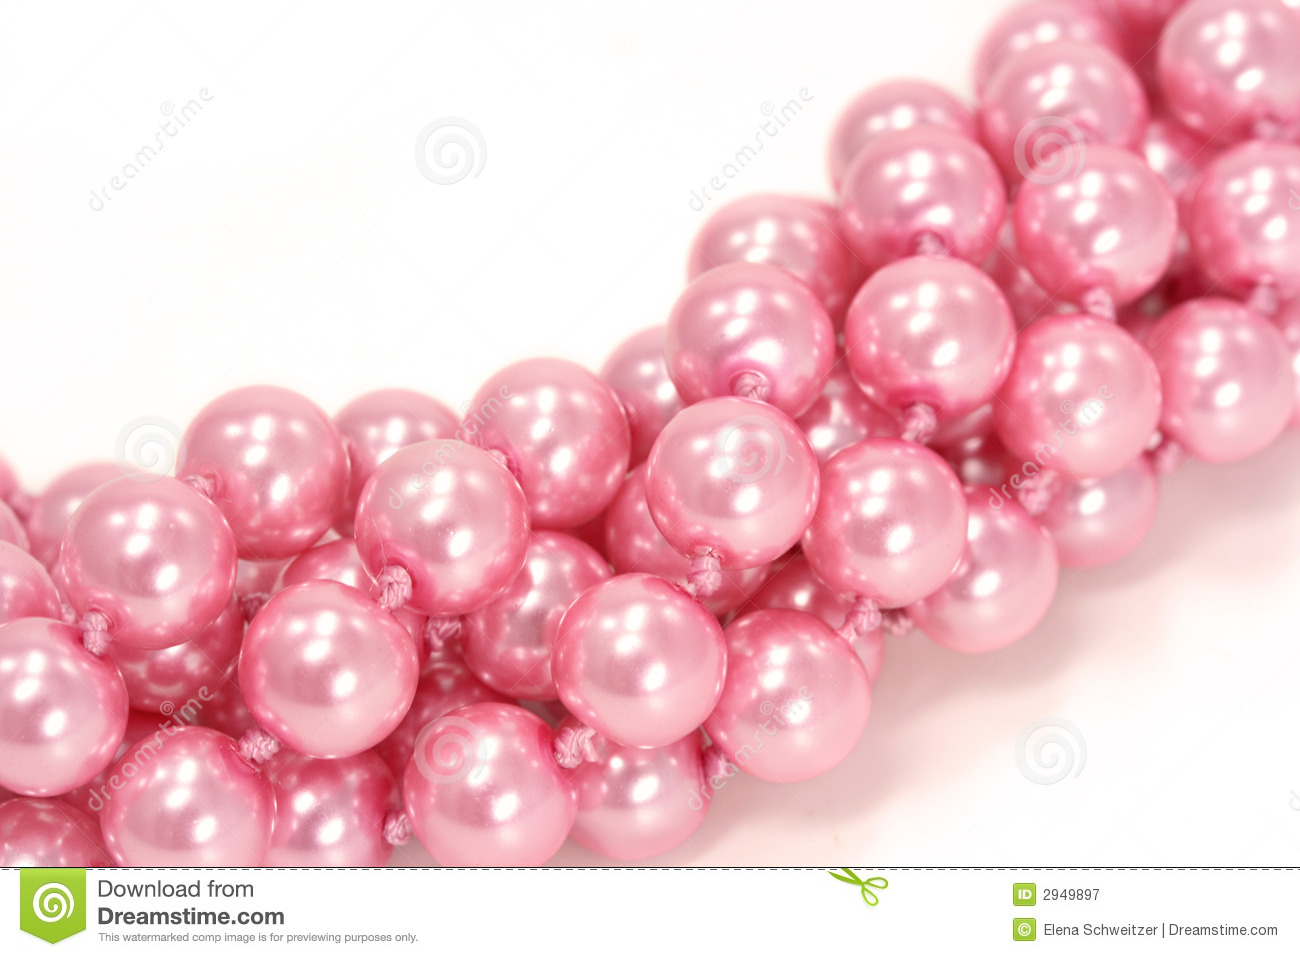 Pink pearls stock image. Image of give, mother, brilliant ...